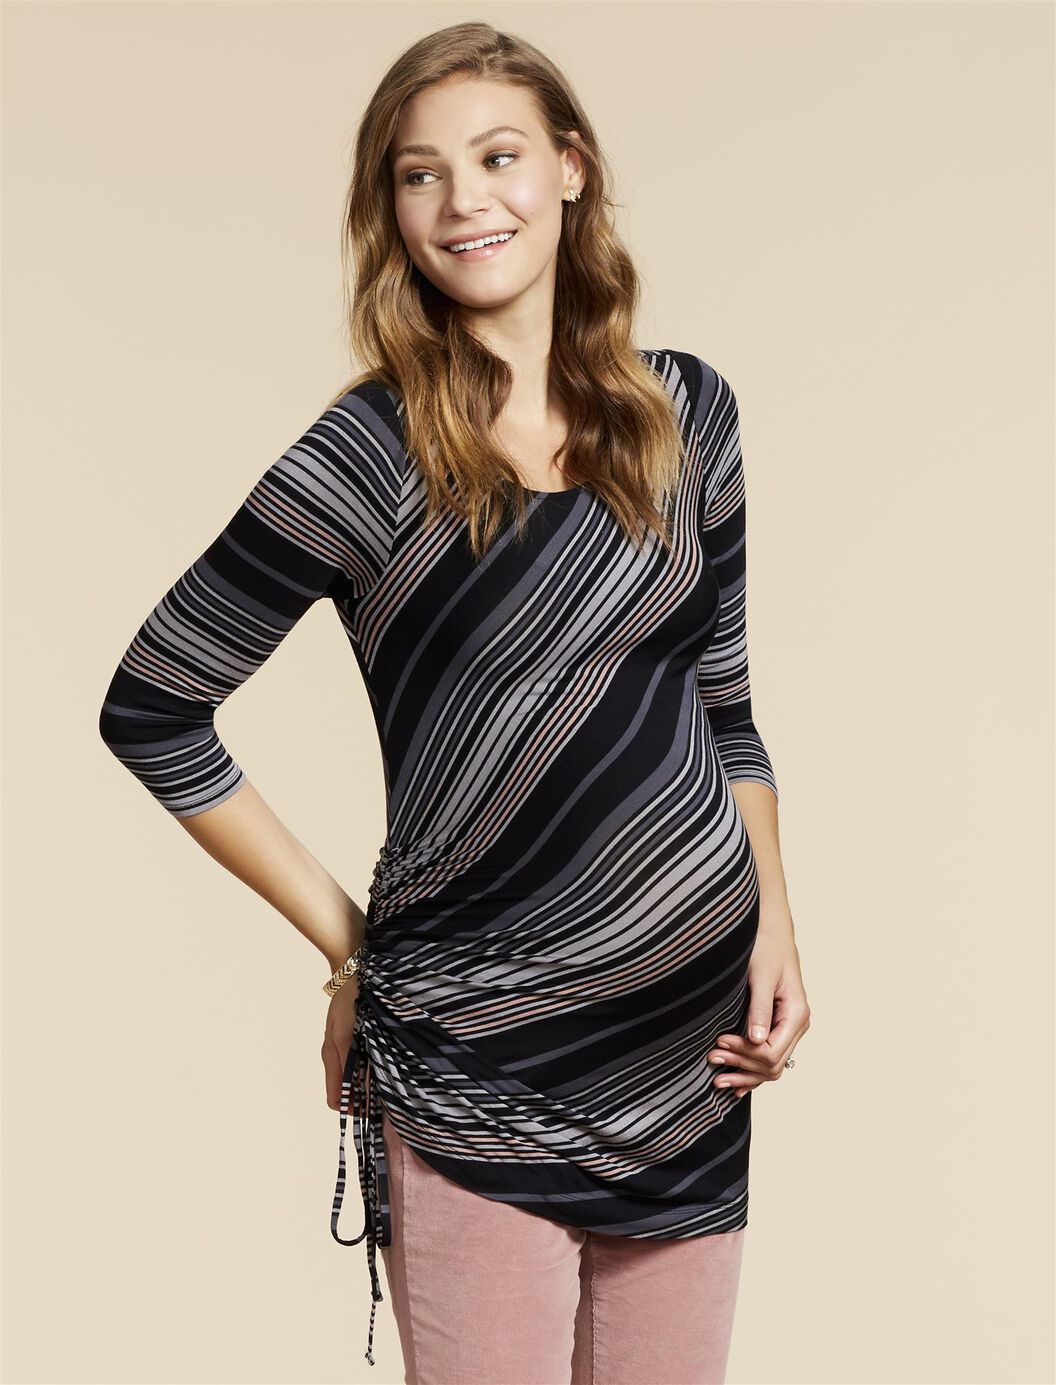 Jessica Simpson Side Tie Maternity Shirt- Stripe at Motherhood Maternity in Victor, NY | Tuggl